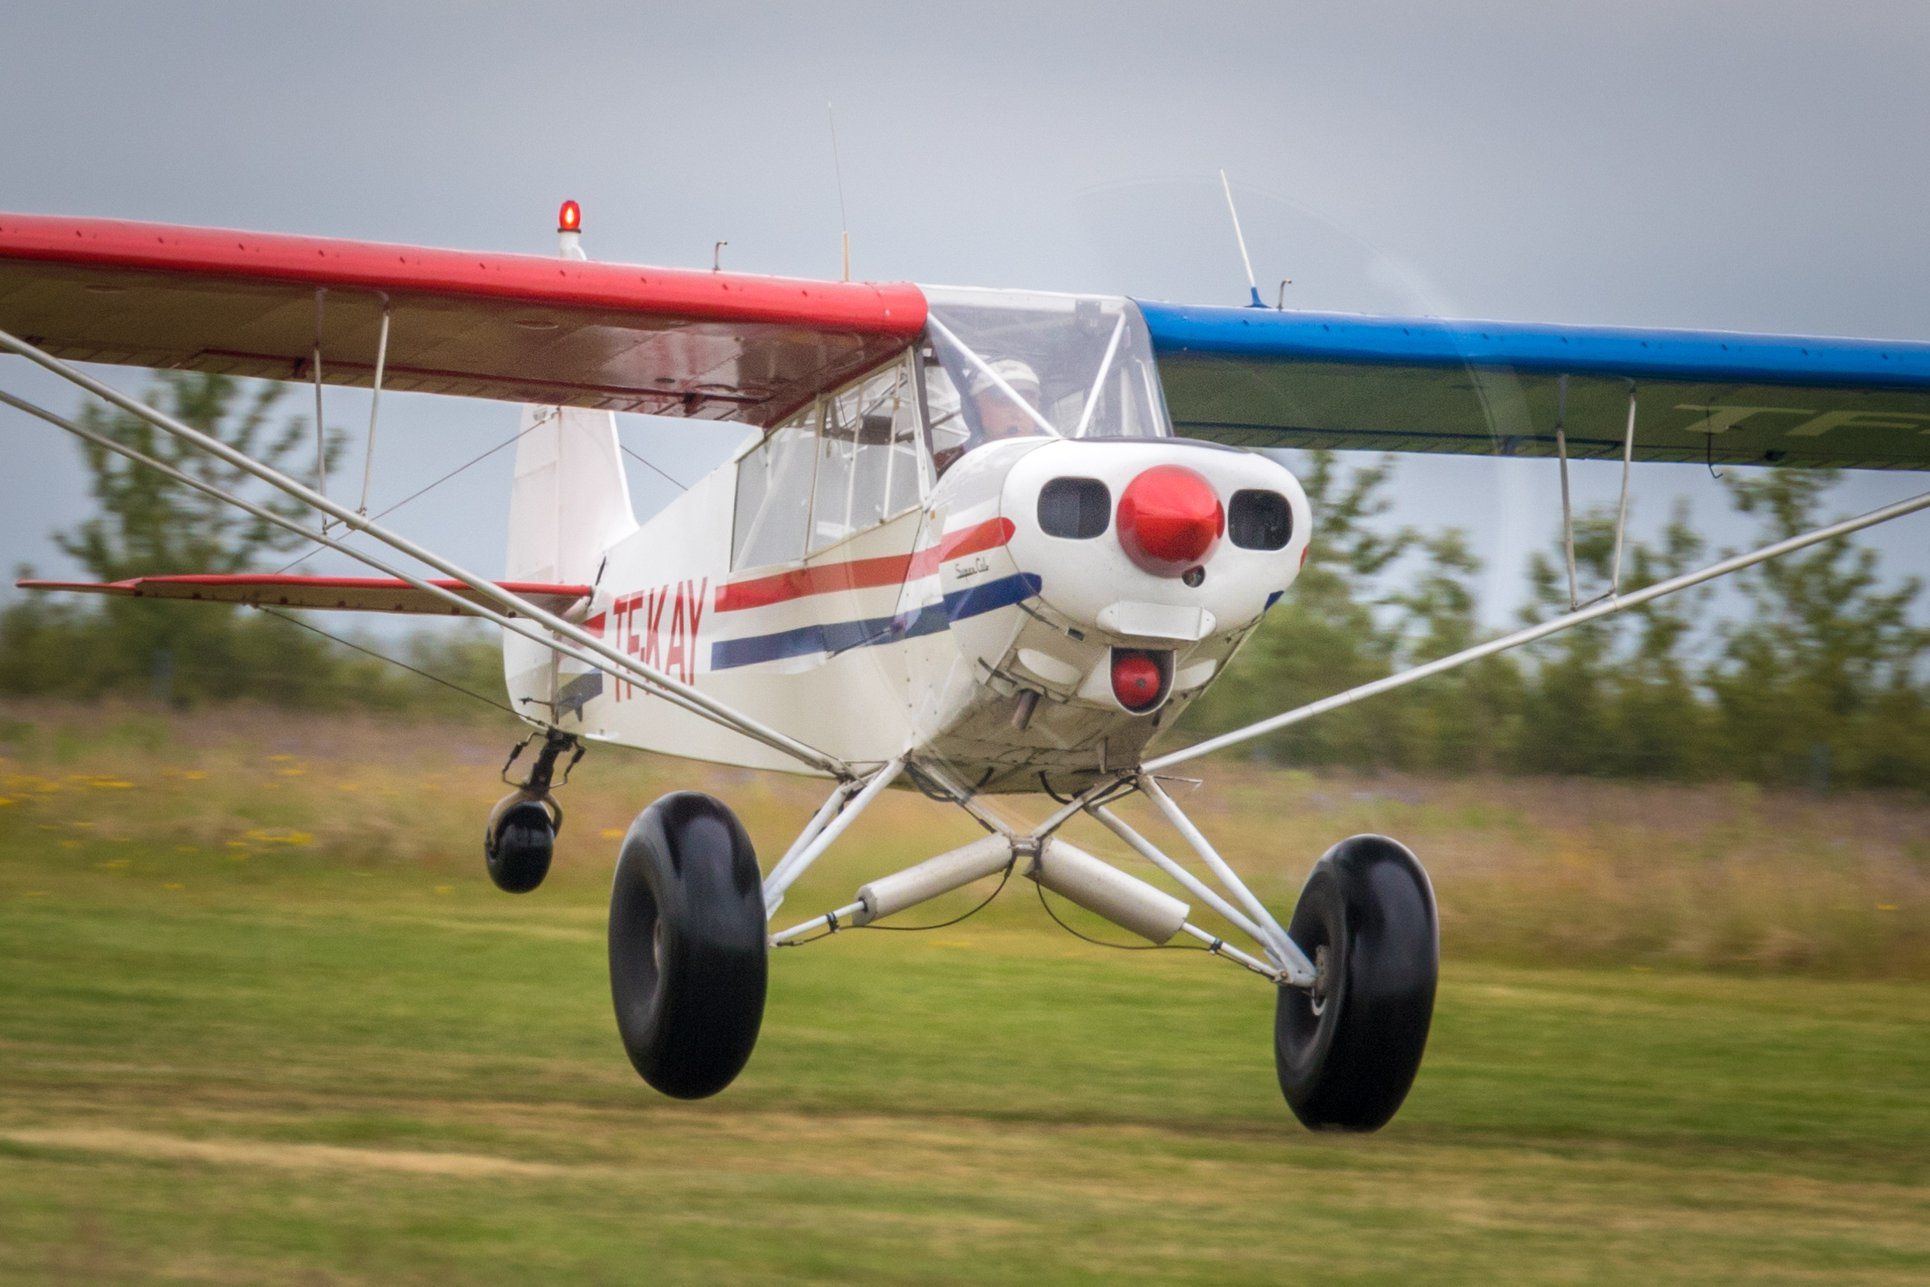 """Piper PA-18-150 TF-KEY during the """"Allt sem flýgur 2019"""" in Hella // Source: Andres Thorarinsson"""